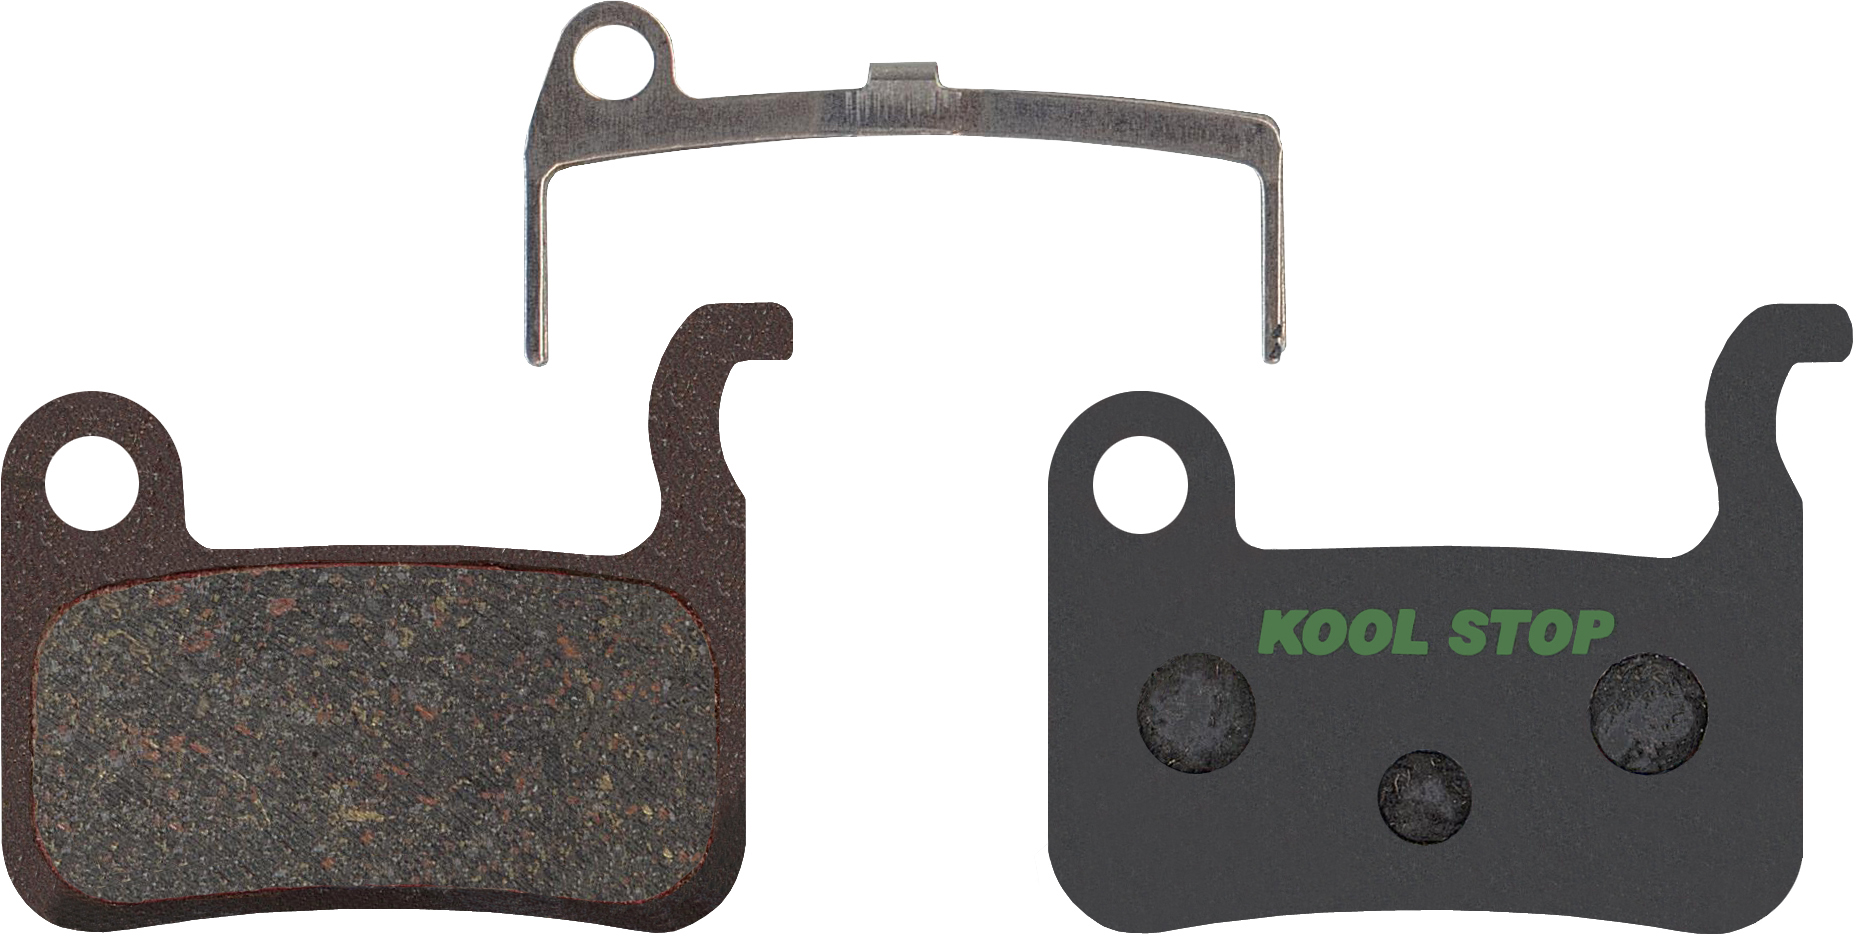 Kool Stop D630E Shimano for E-Bike | Brake pads